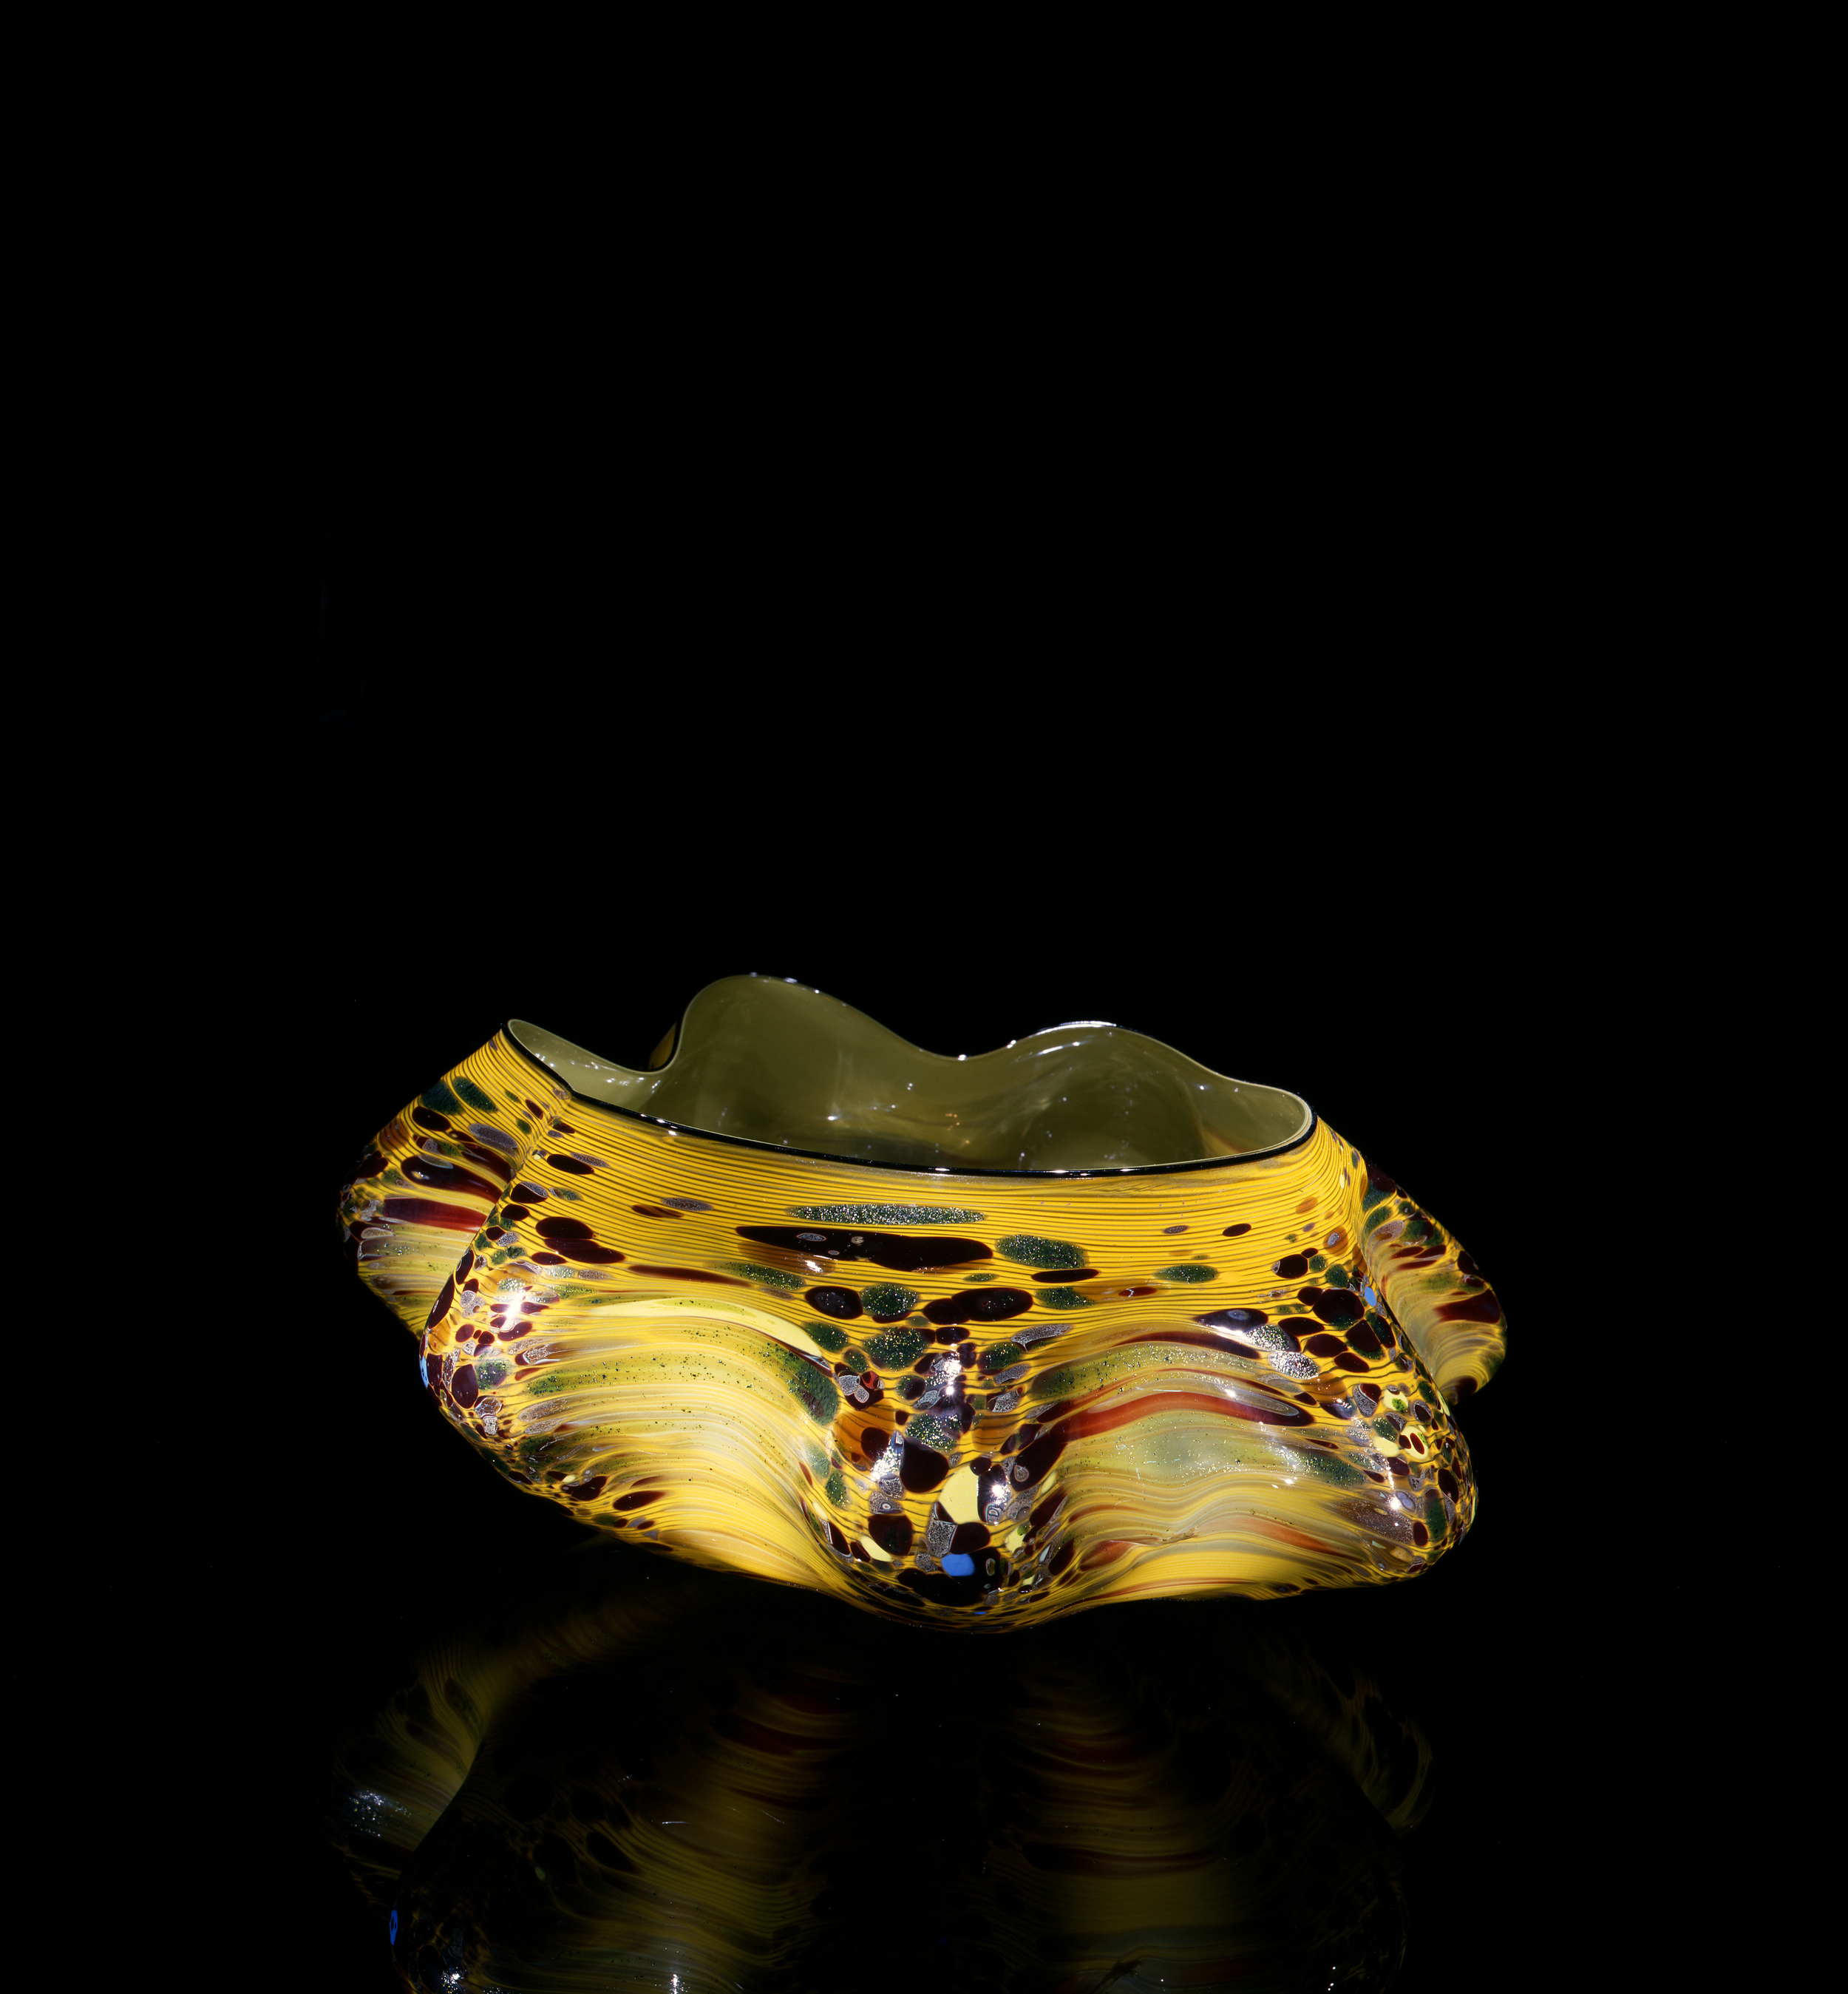 Dale Chihuly, Hazel Macchia with Carbon Lip Wrap (1981, glass, 7 x 15 x 14inches), DC.101